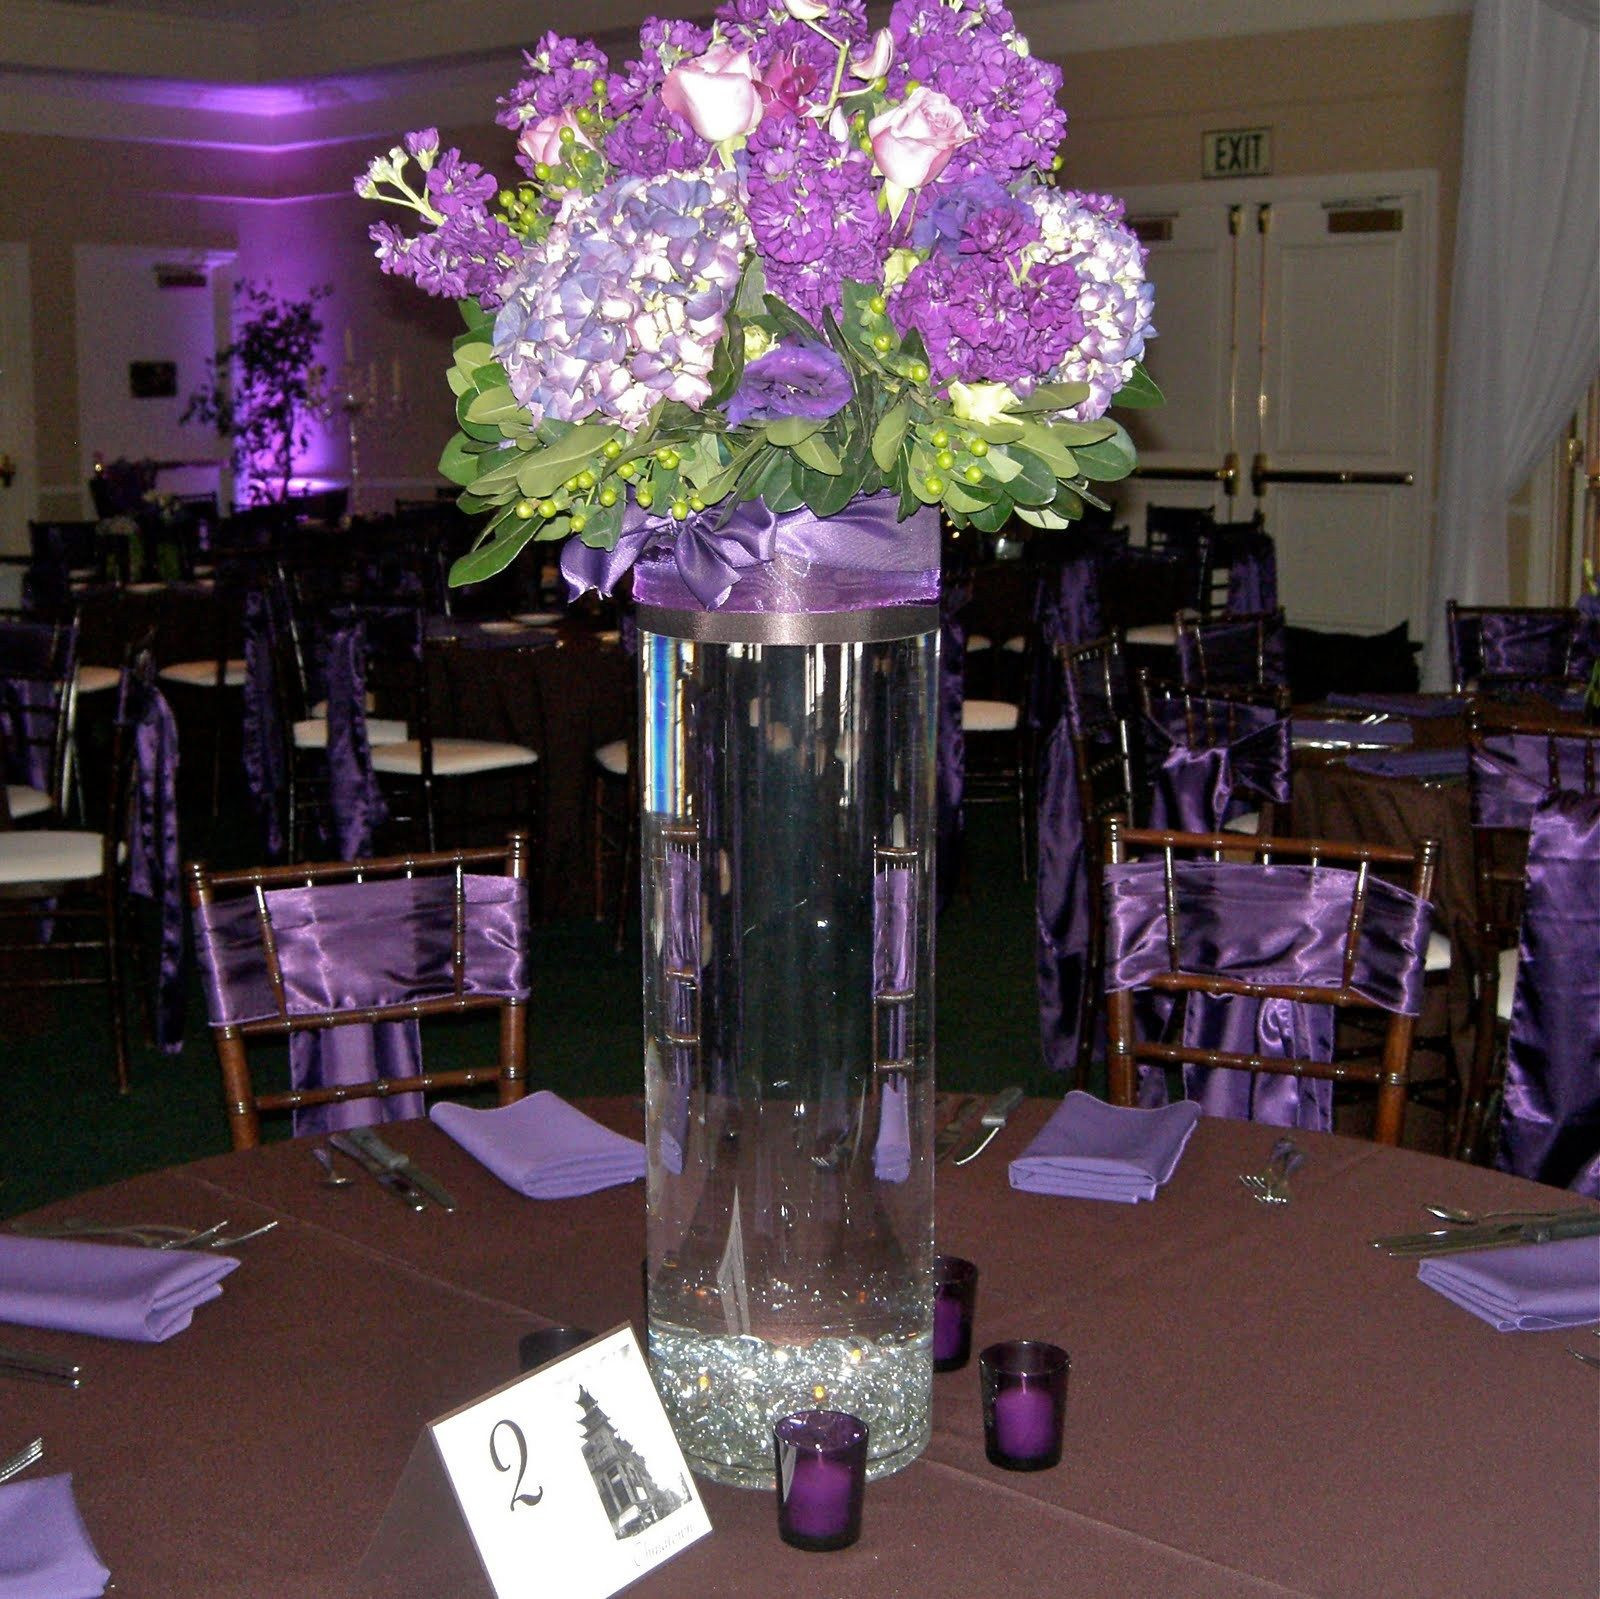 16 cylinder vase of 23 tall cylinder vases the weekly world inside bulk glass vases for centerpieces vase and cellar image avorcor